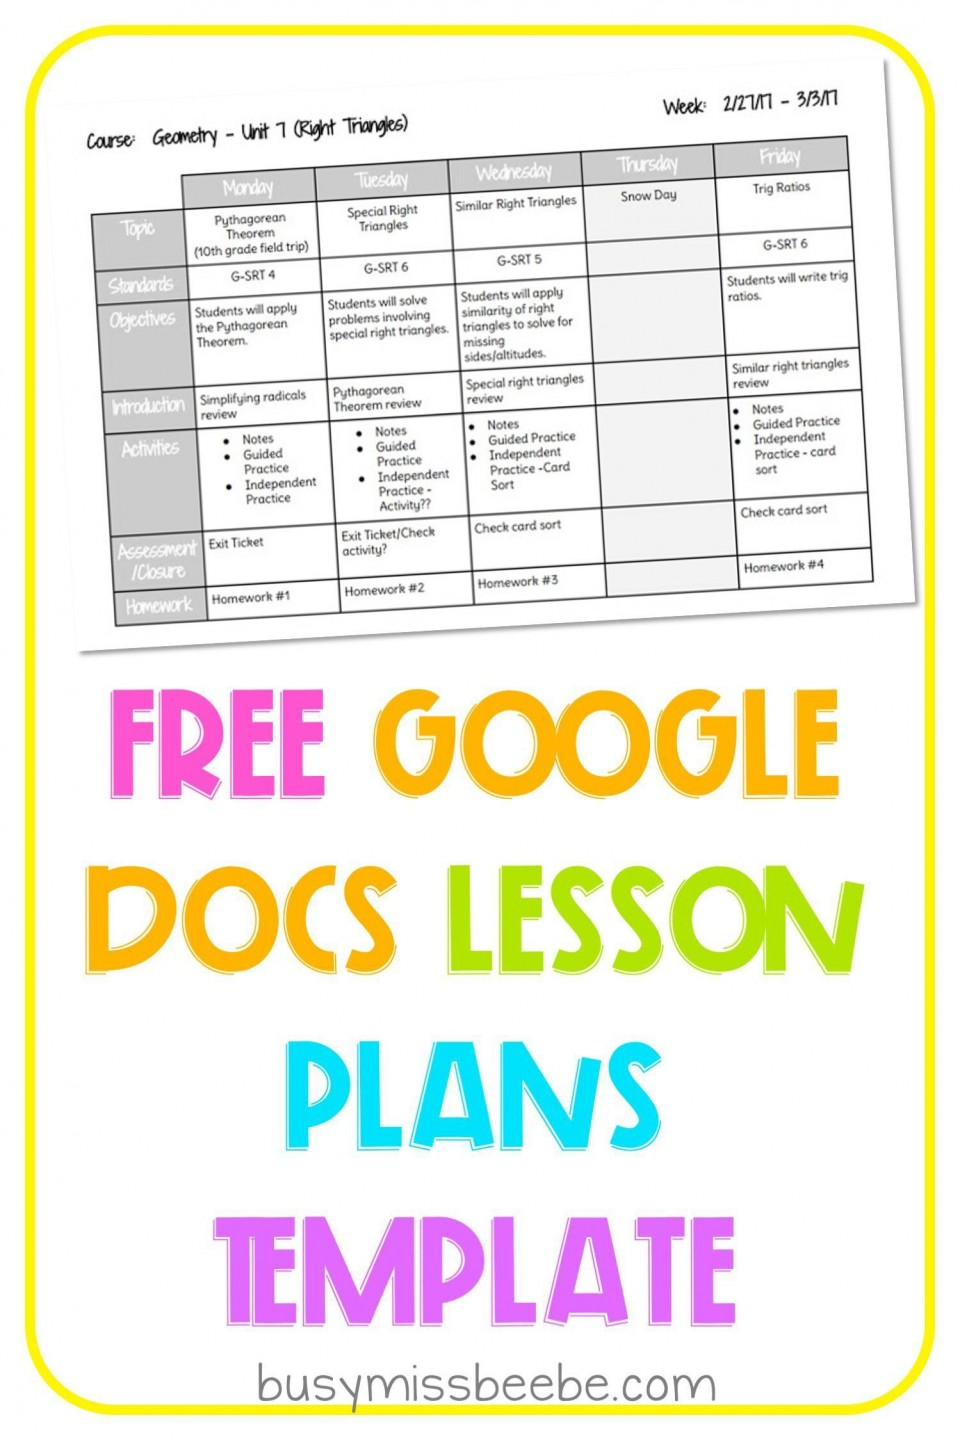 000 Wonderful Free Weekly Lesson Plan Template Google Doc Picture 960